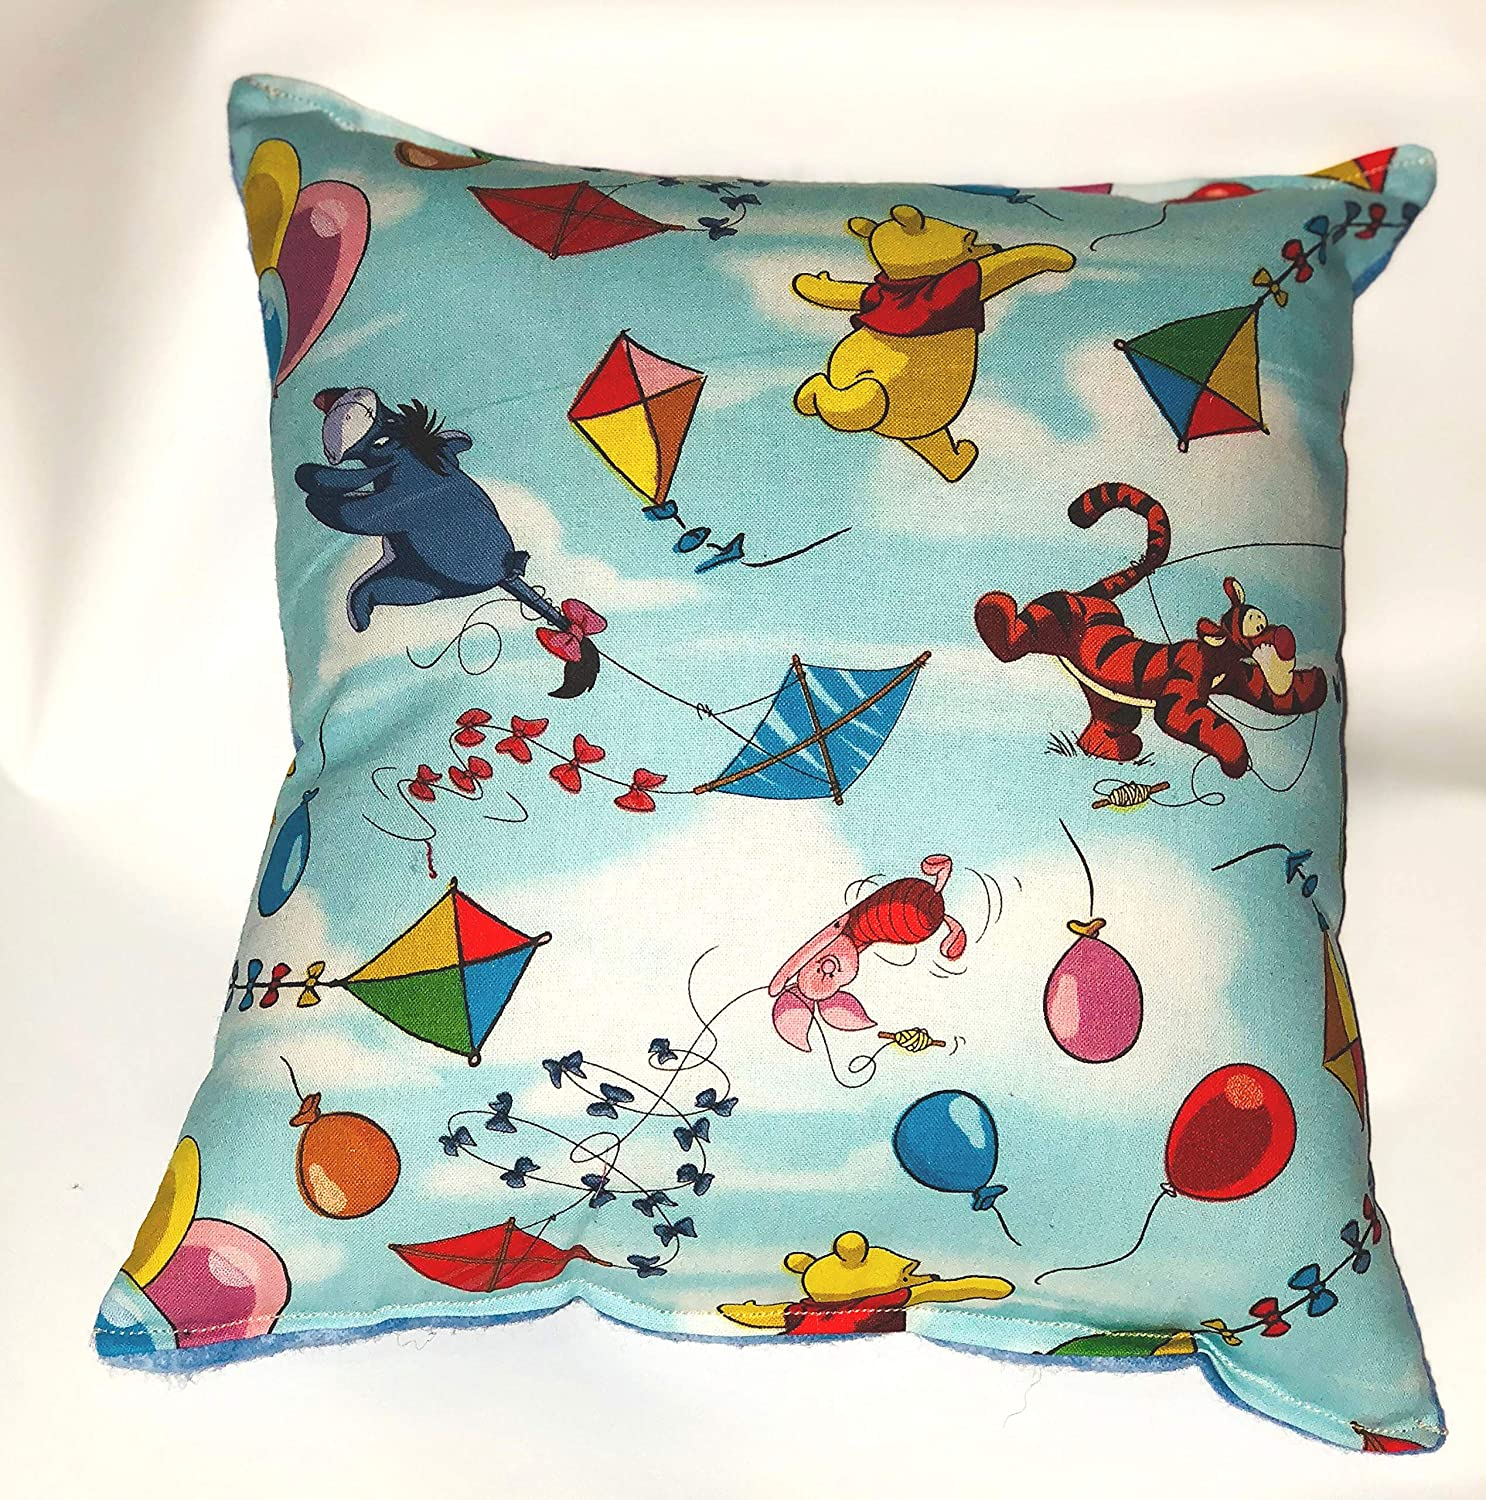 "Christopher Robins Pillow Winnie The Pooh PillowHANDMADE Pillow Made in USA Pillow is approx 10"" X 11"